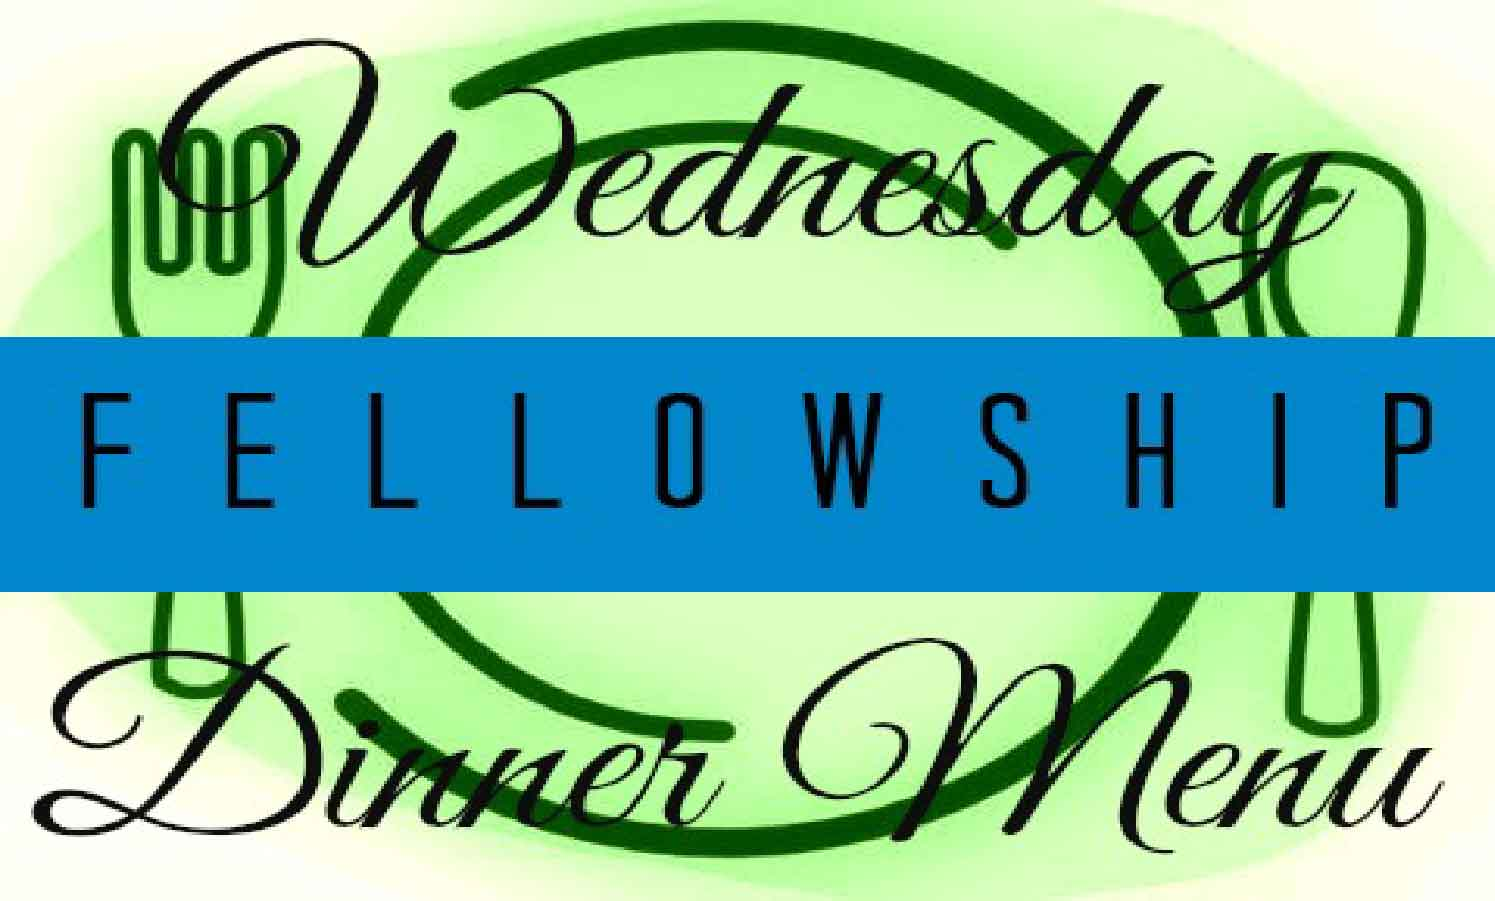 Wednesday Dinner - Community dinner is served from 5:15-5:45 on Wednesdays during the school year in the Fellowship Hall. Free for everyone. Donations accepted. To make reservations, click here.